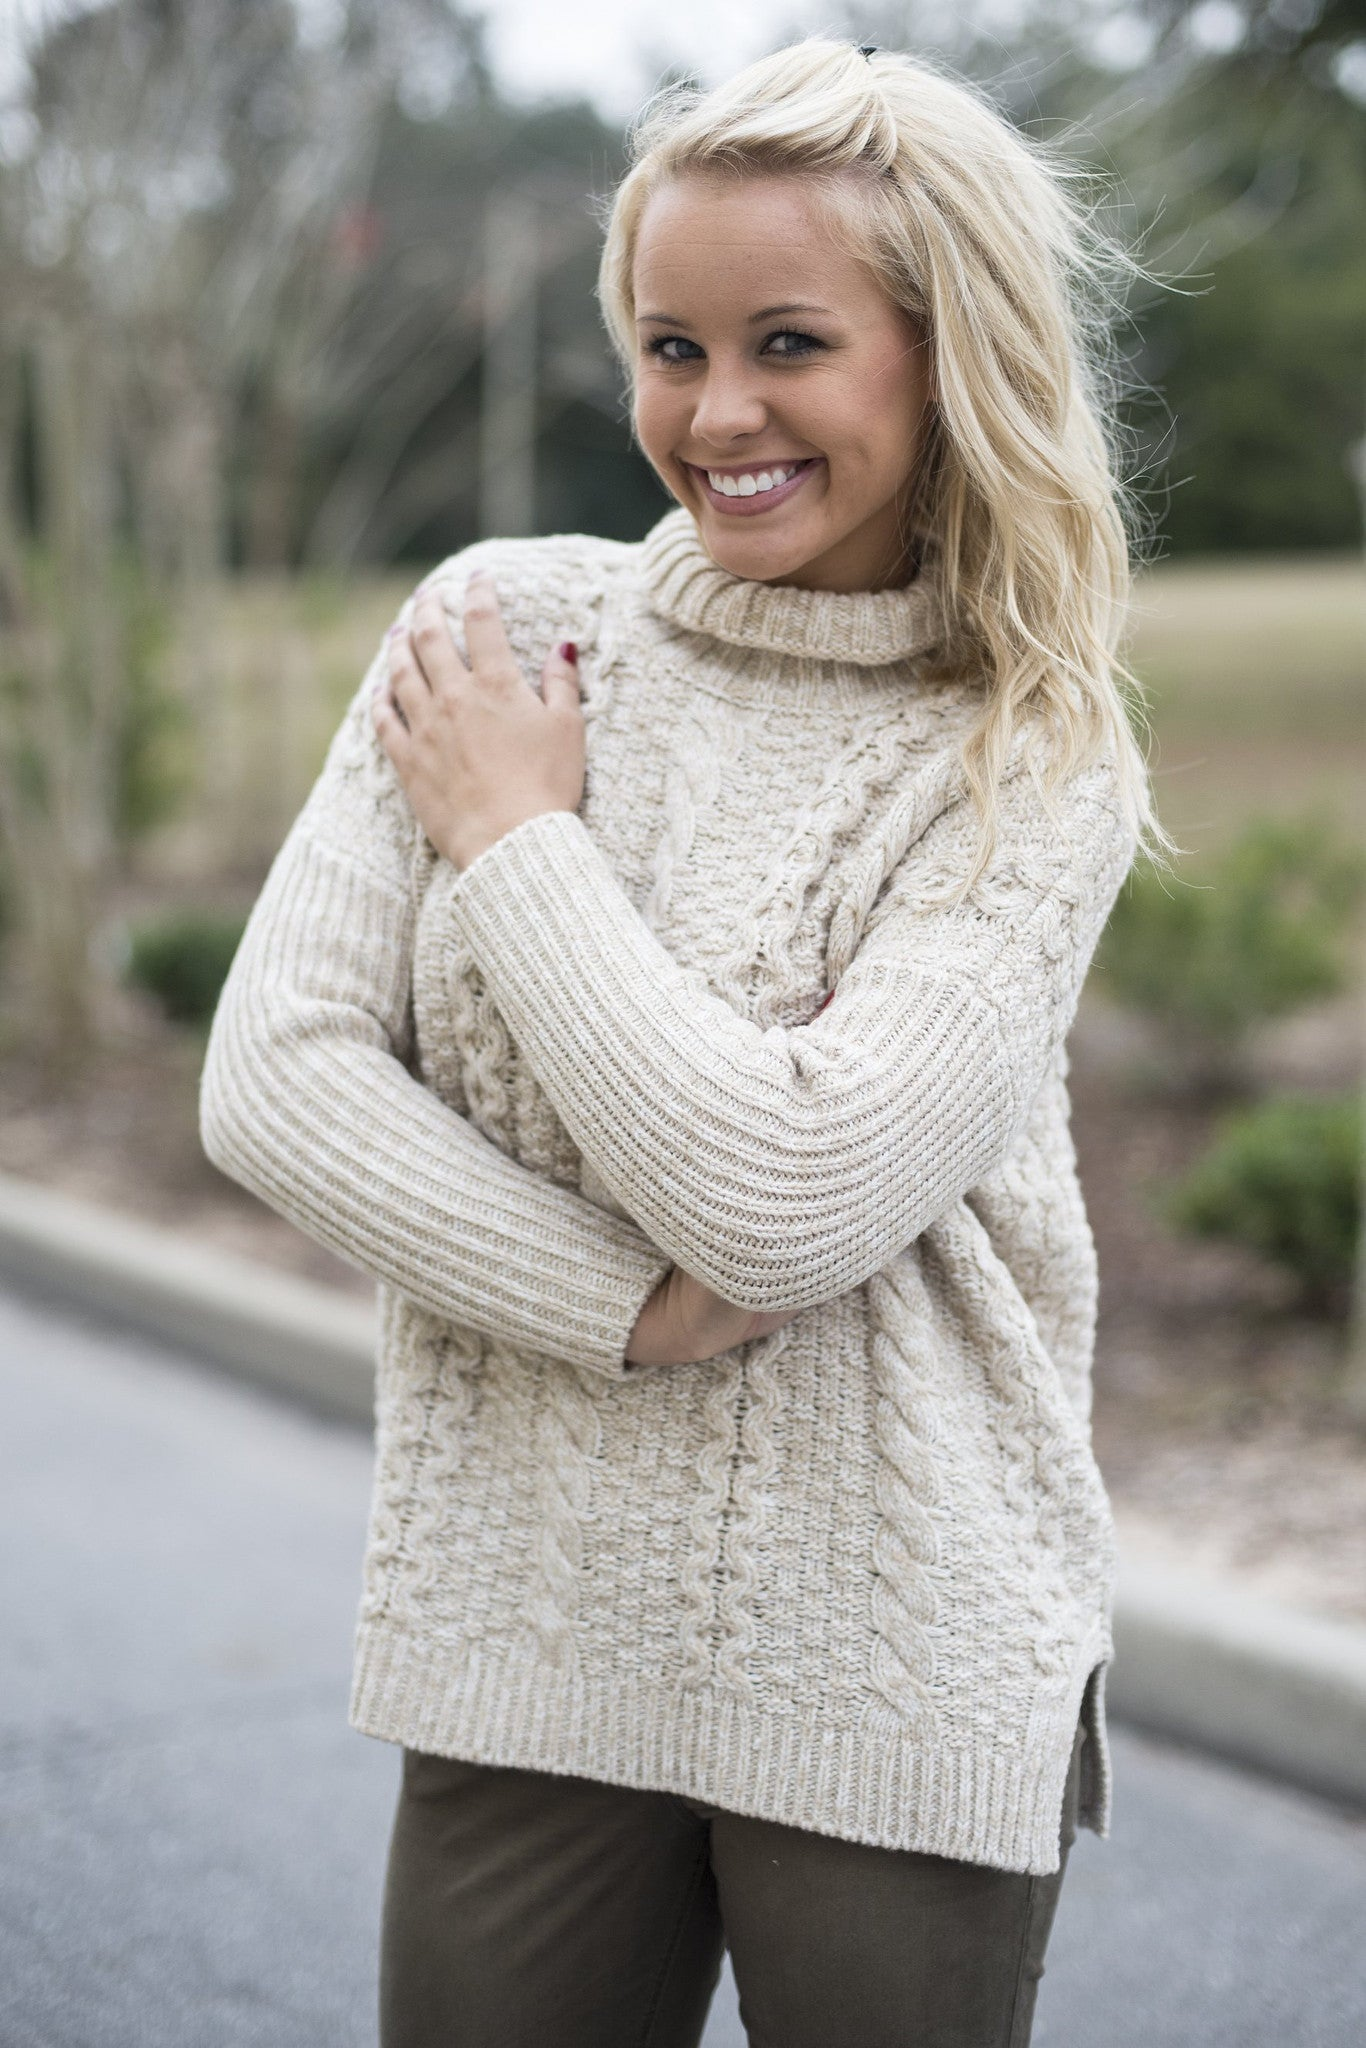 525 America: Brooklyn Top, Ivory